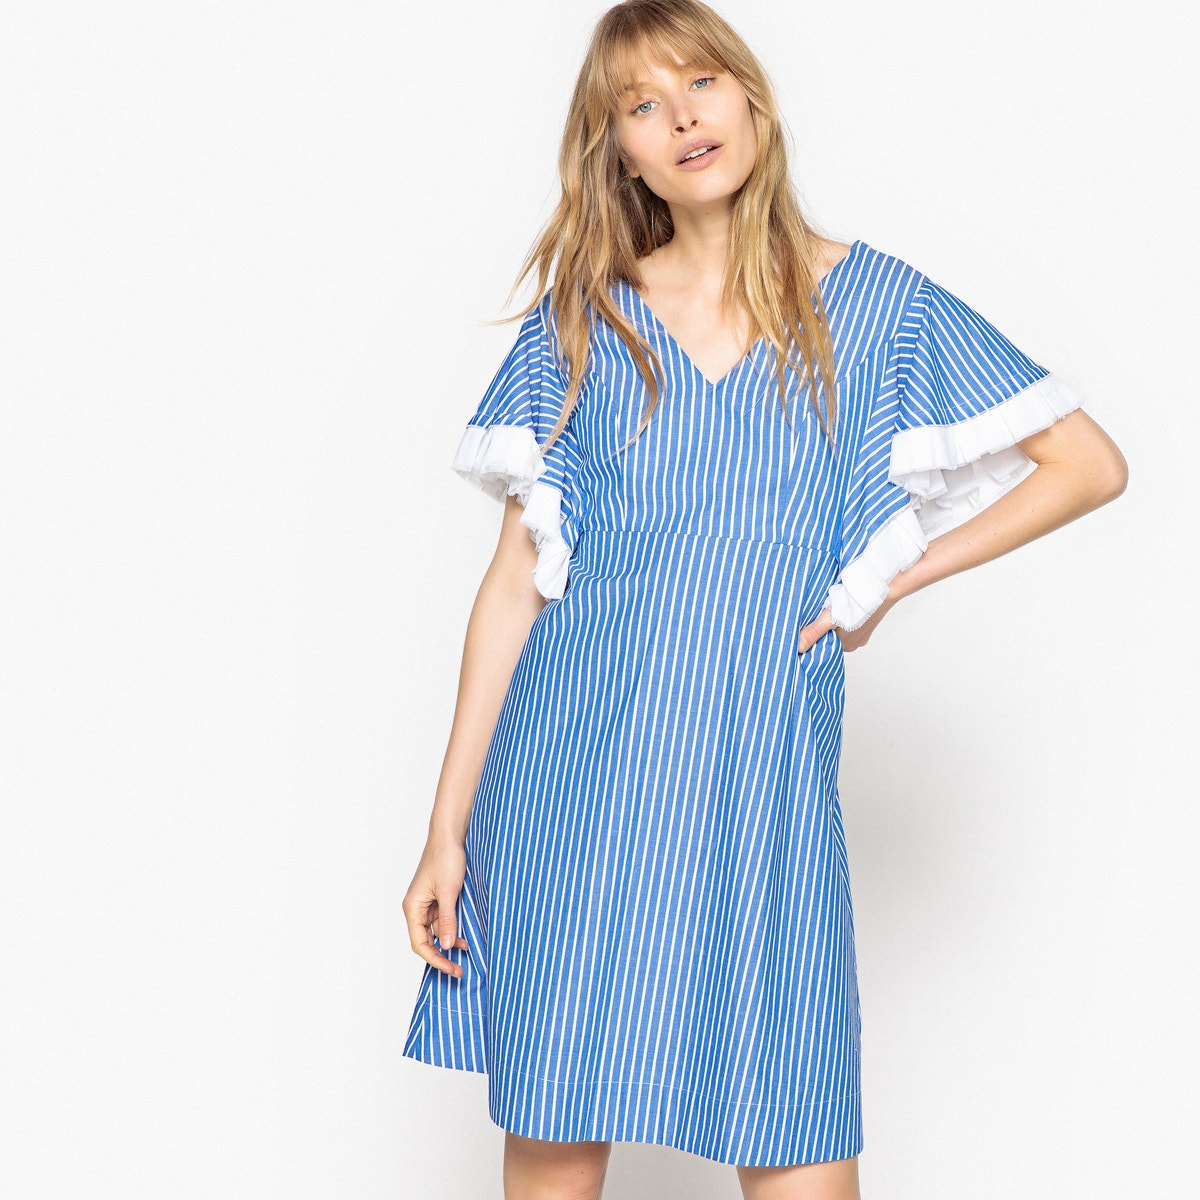 Mademoiselle-R-Womens-Striped-Dress-With-Ruffle-Sleeves-And-Open-Back